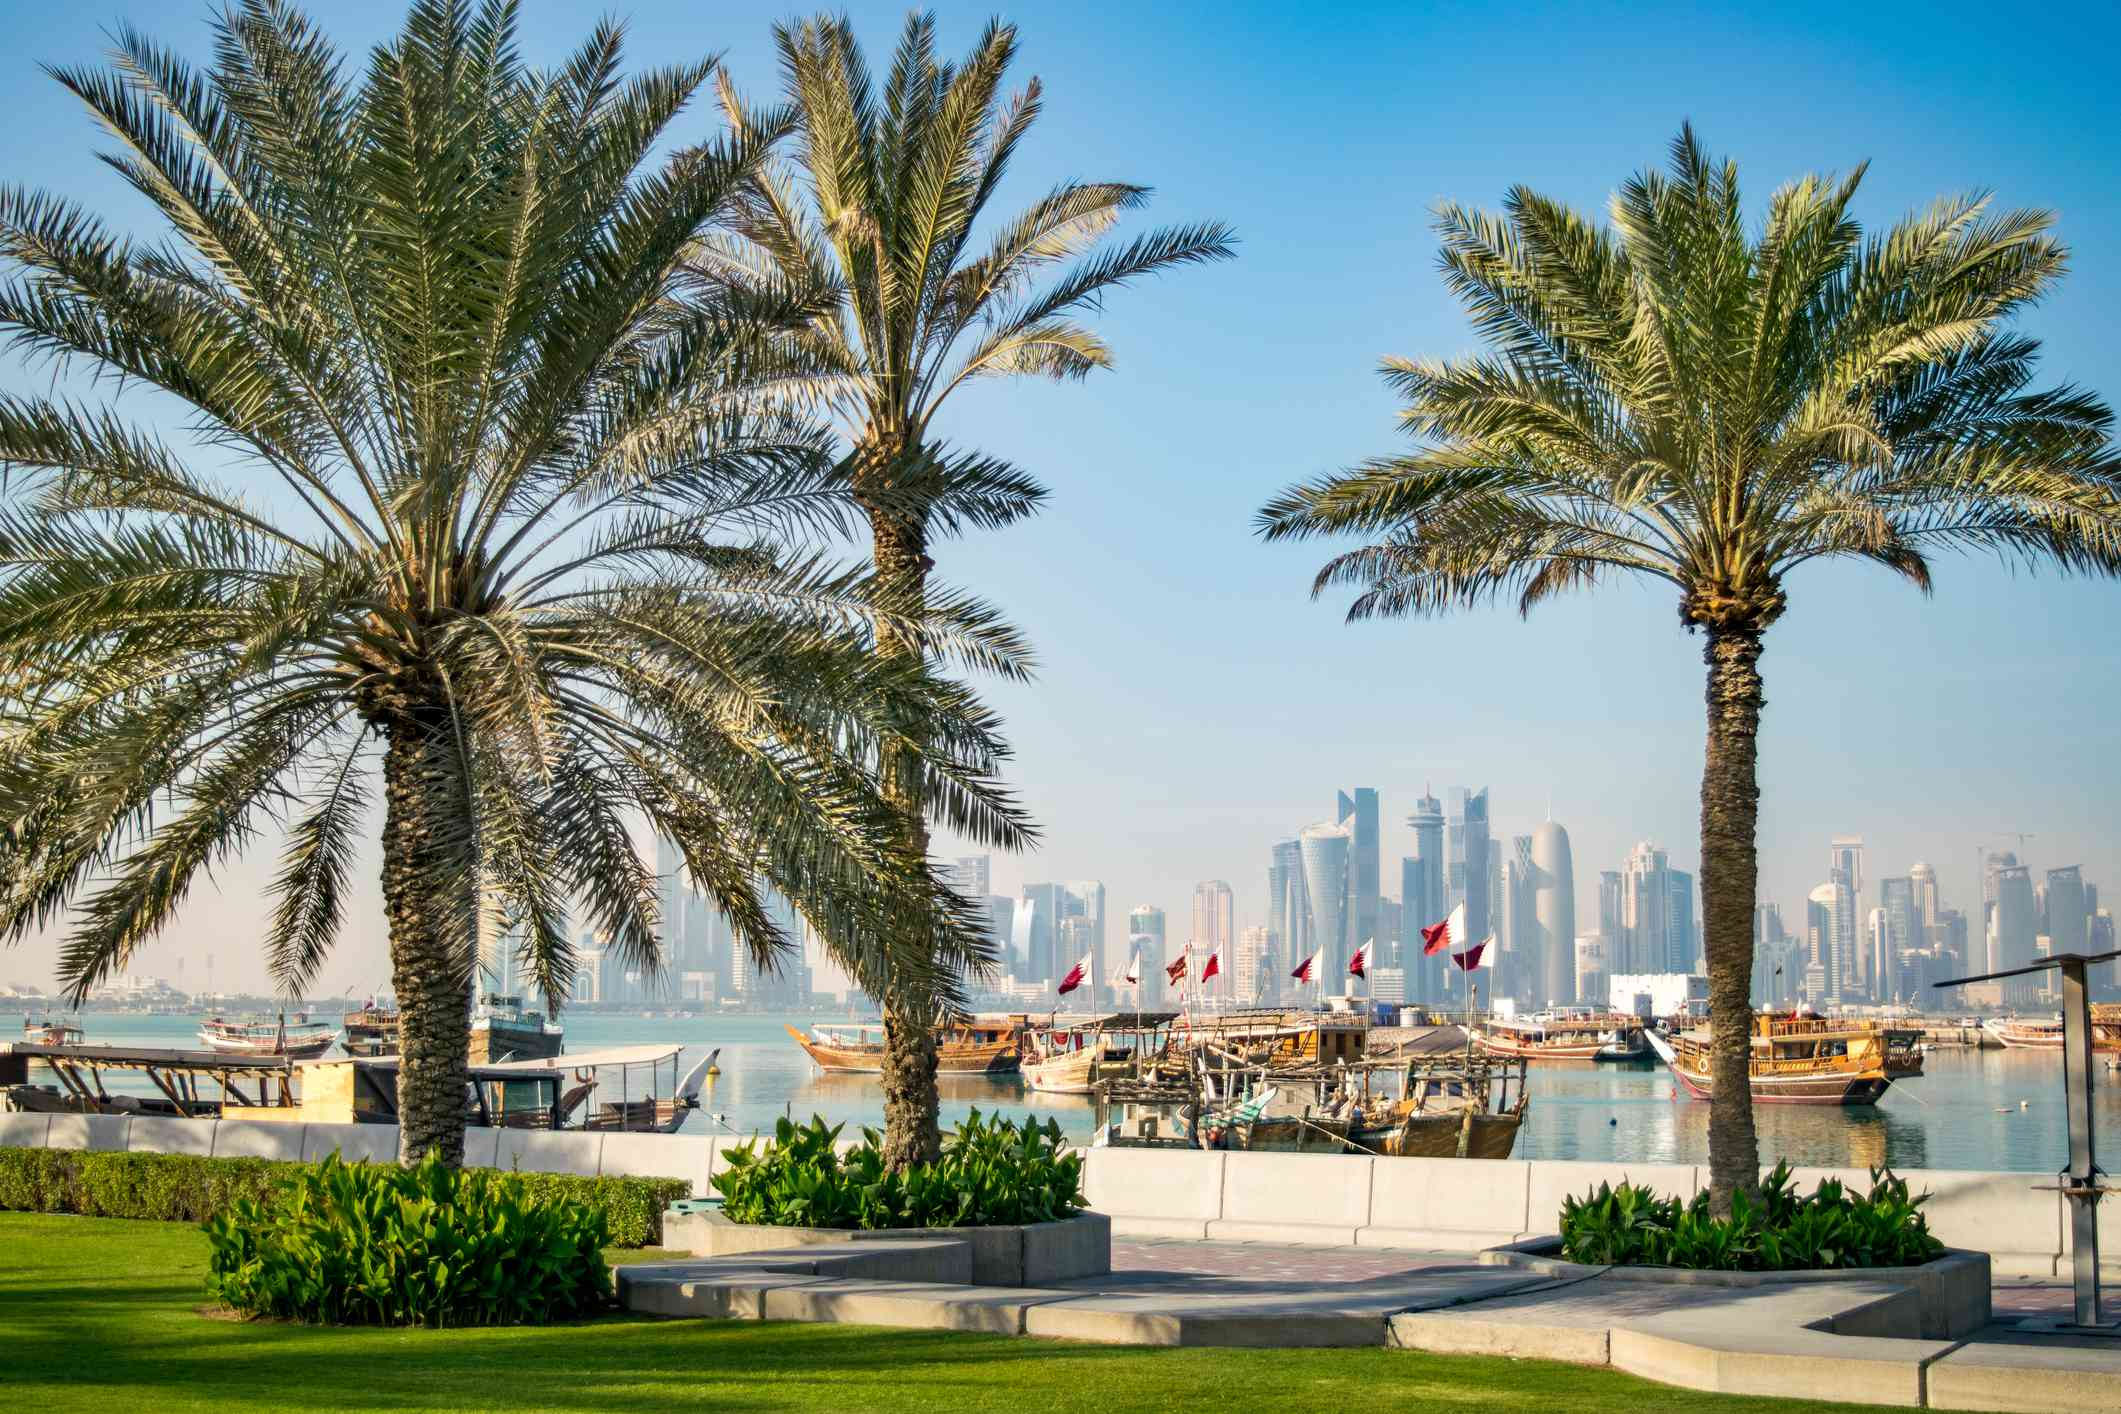 two palm trees in planters and one palm tree in the grass on the Corniche with boats in the water behind the path